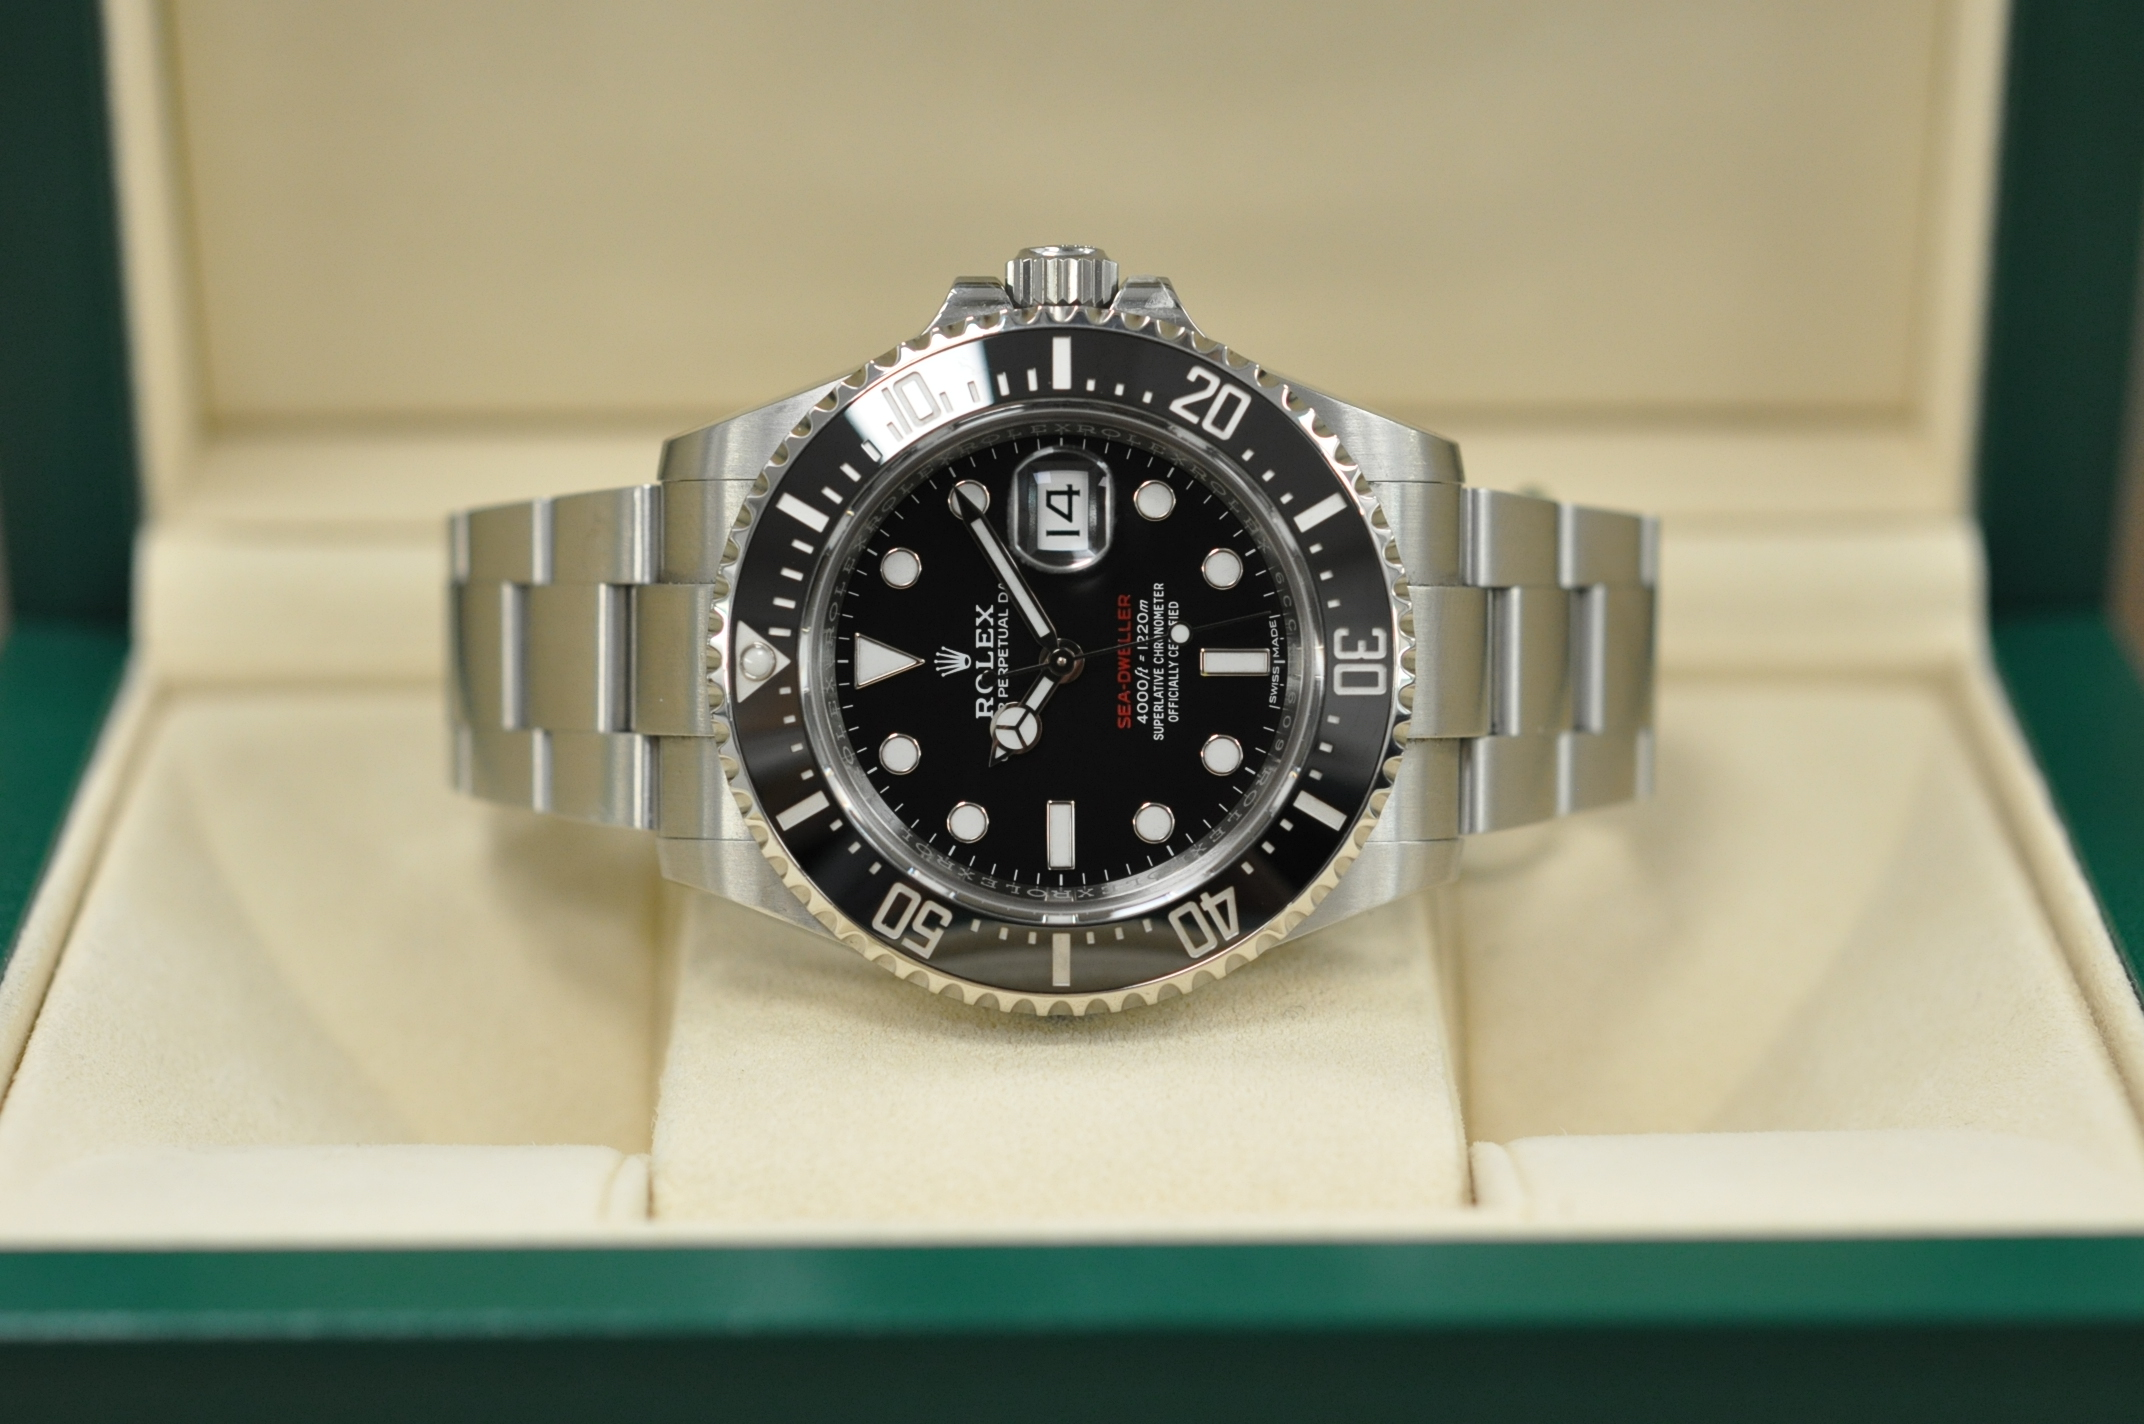 2018 Sea-Dweller 126600 Mark 1 dial